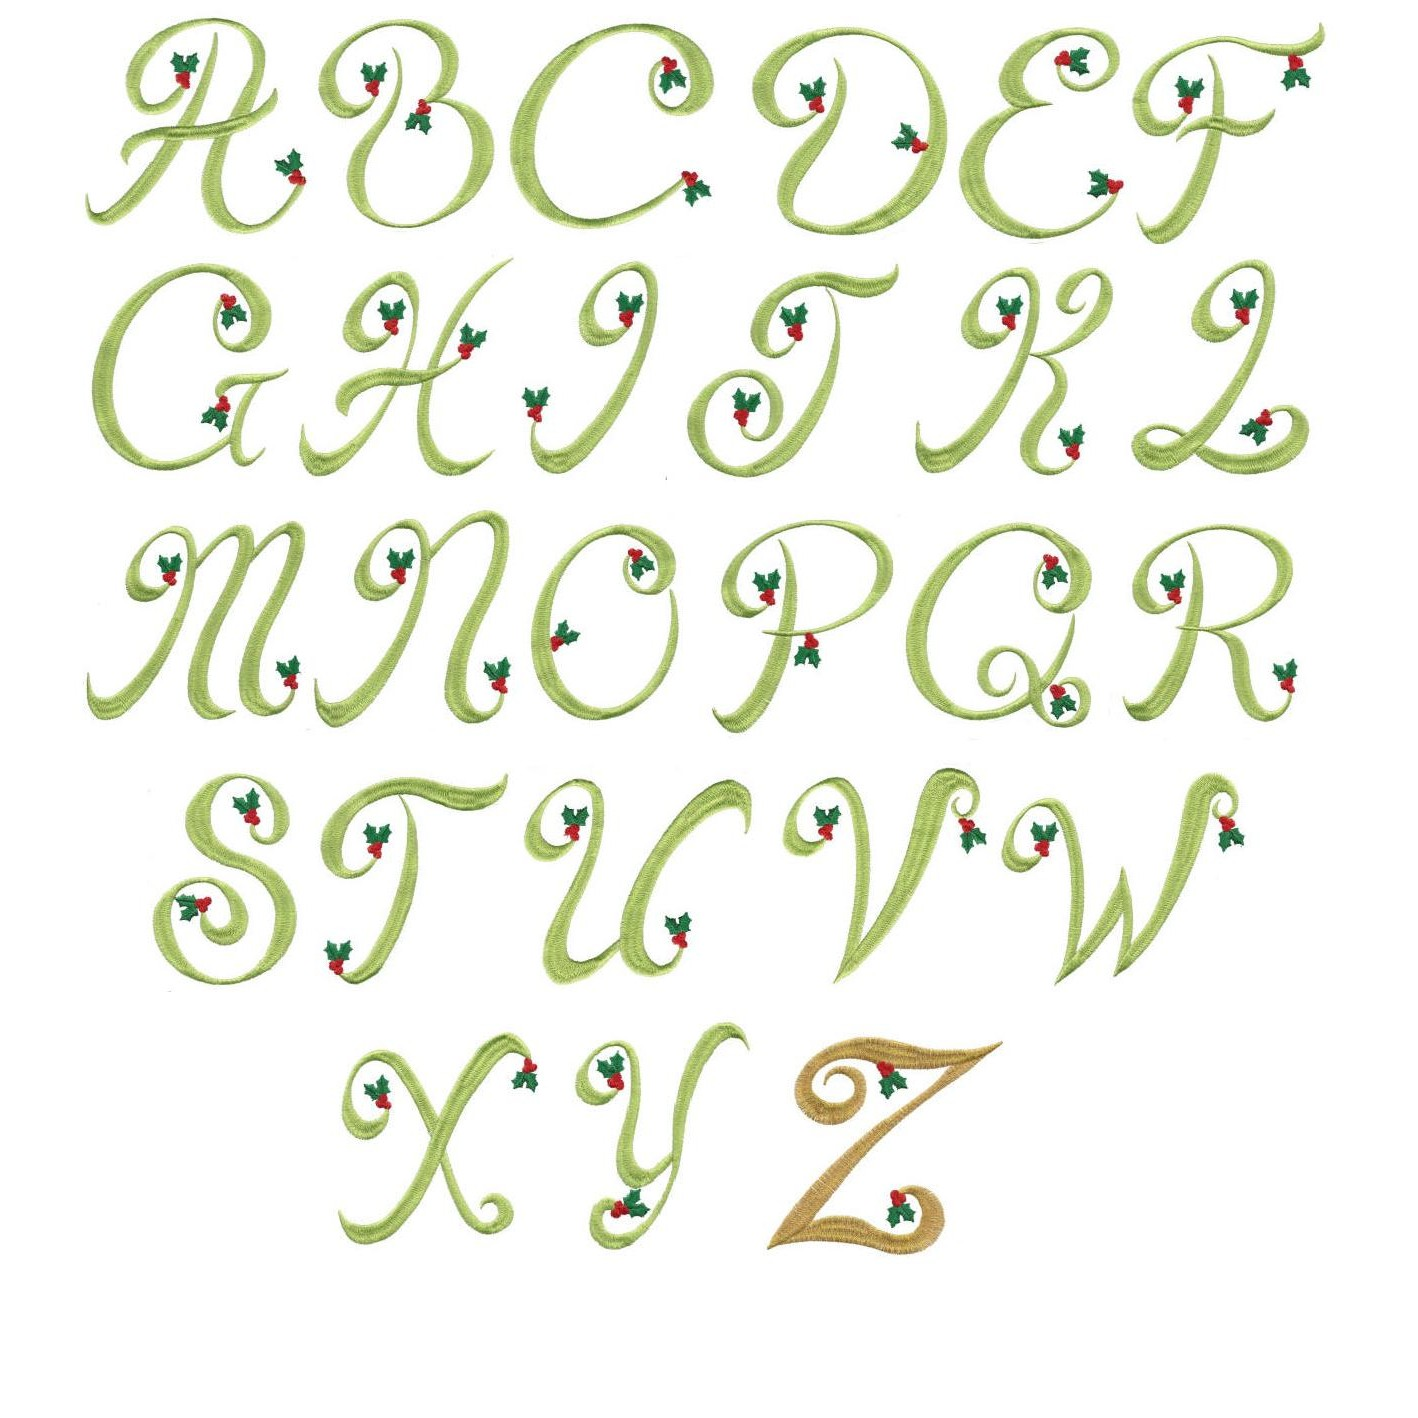 ... Letters Fonts, Christmas Fonts and Christmas Free Cane Fonts.candy